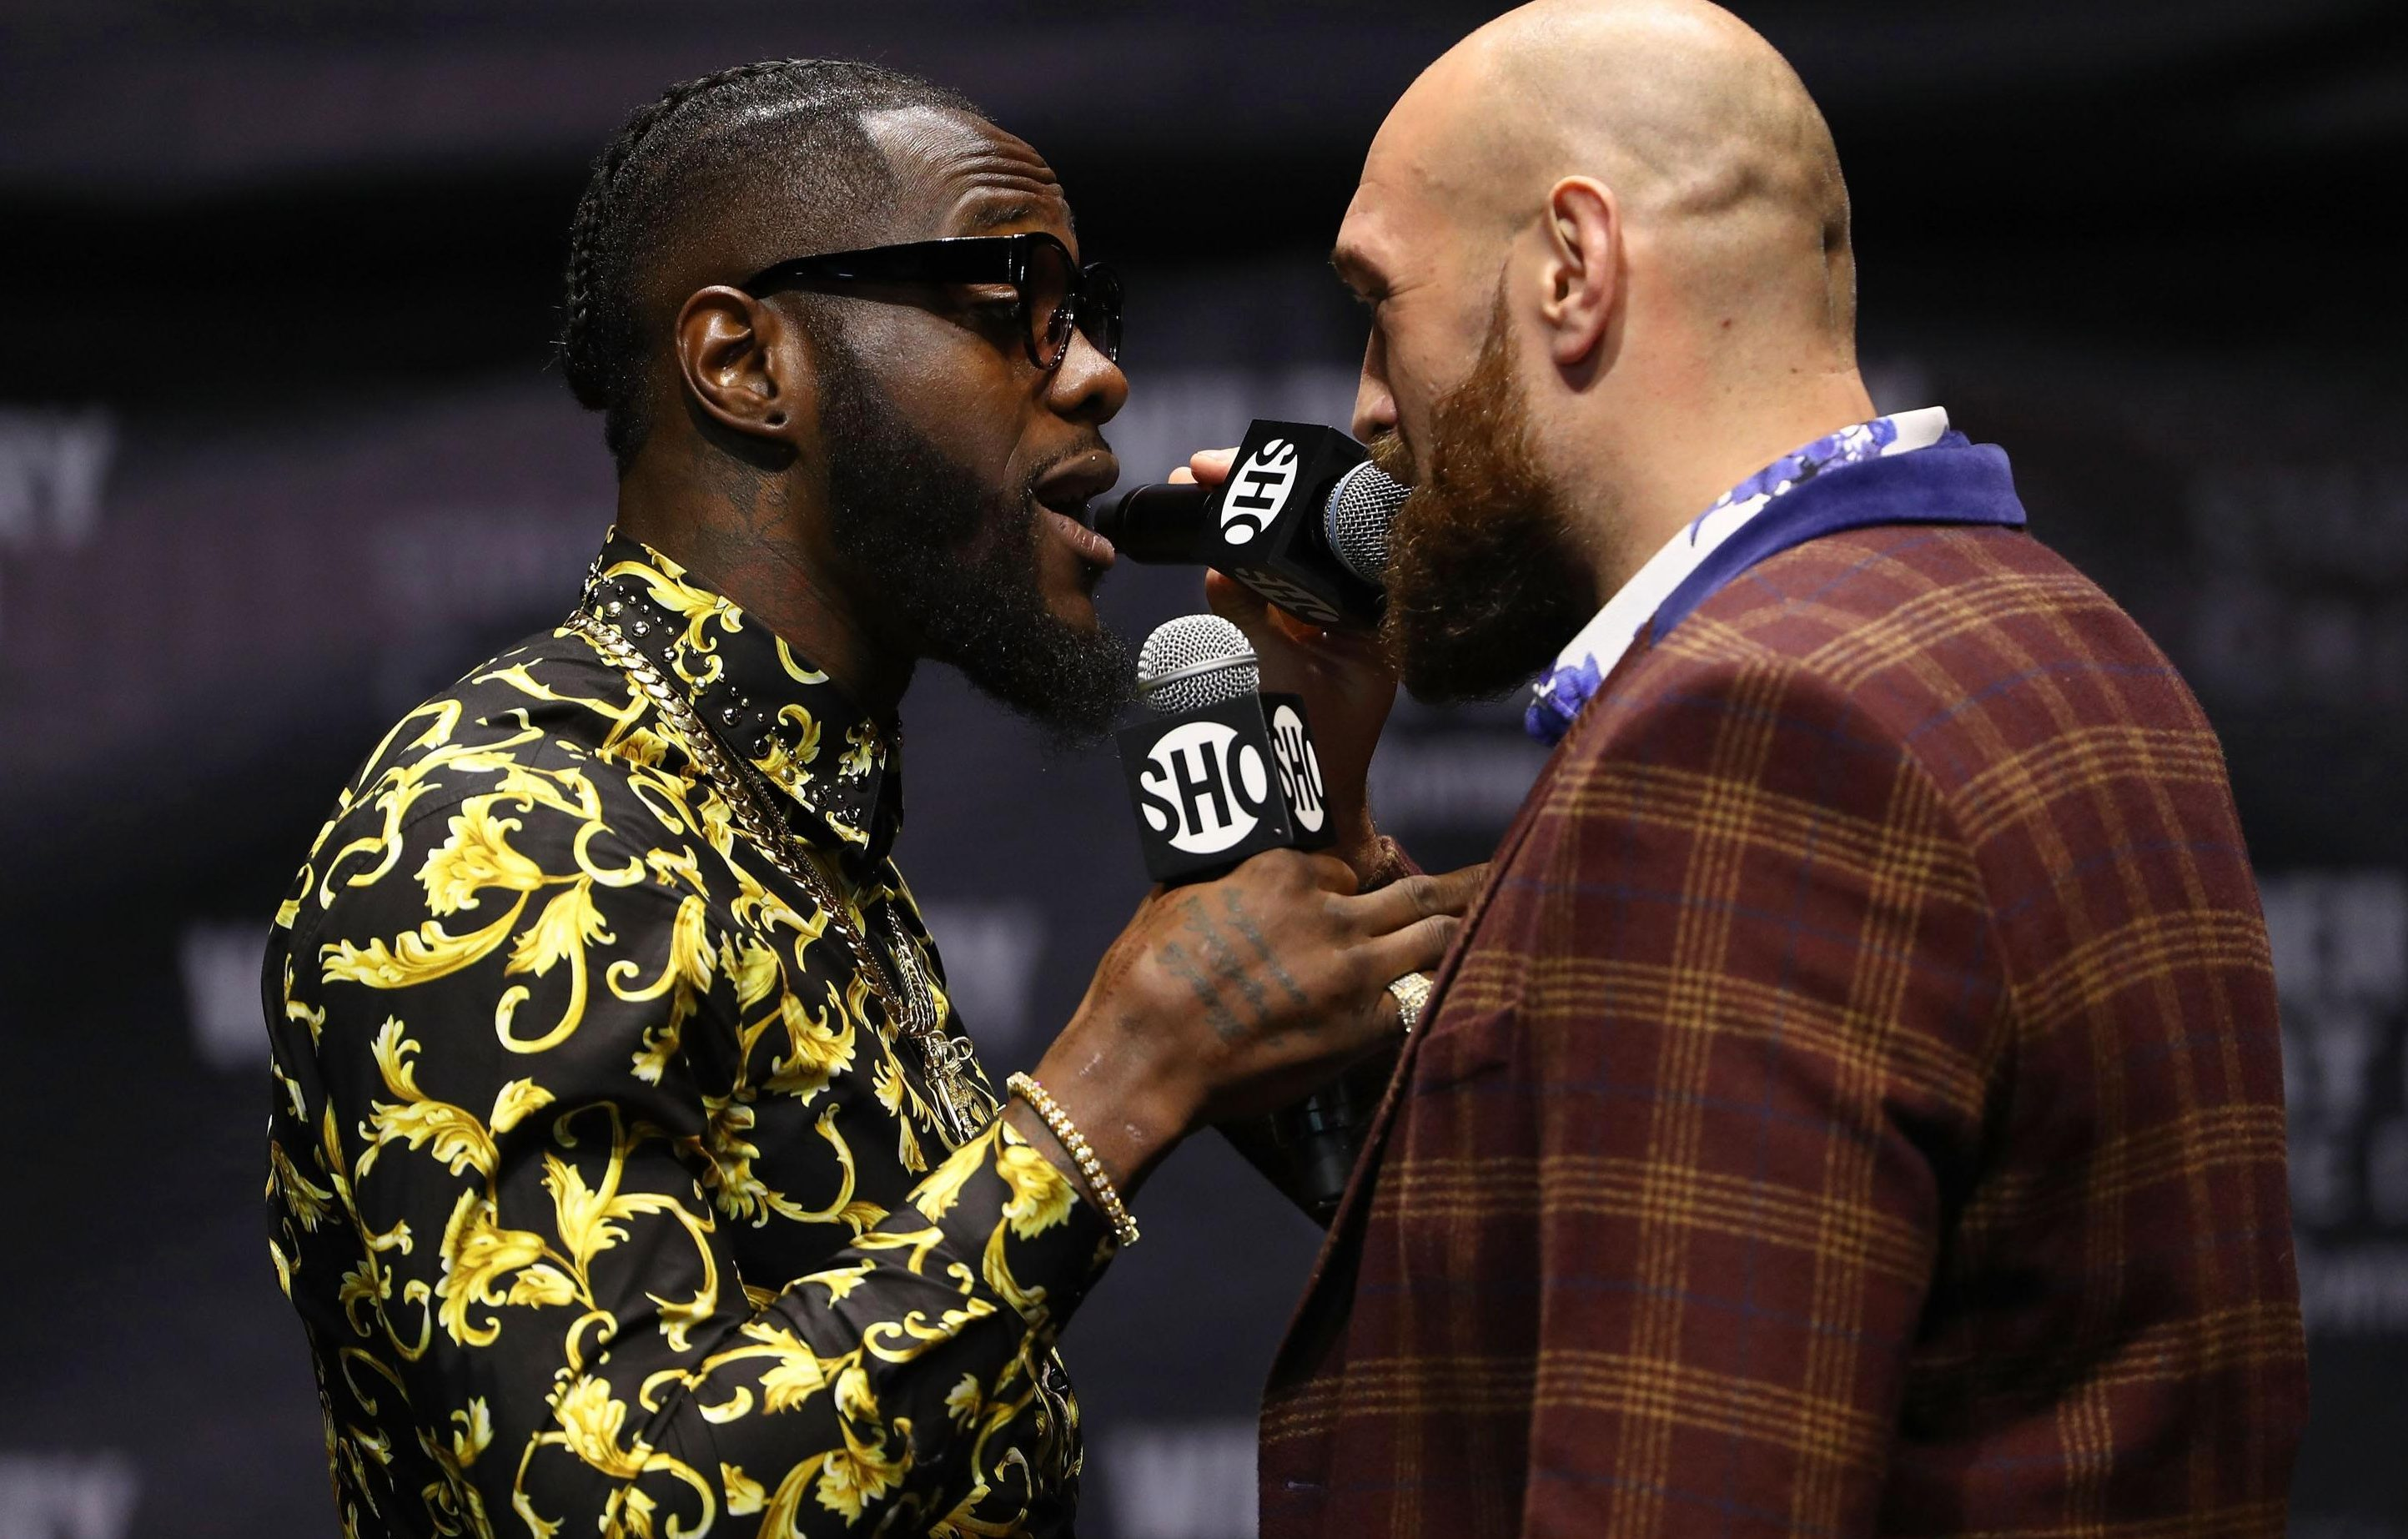 Wilder, 33, is preparing to face unbeaten Brit Tyson Fury in December